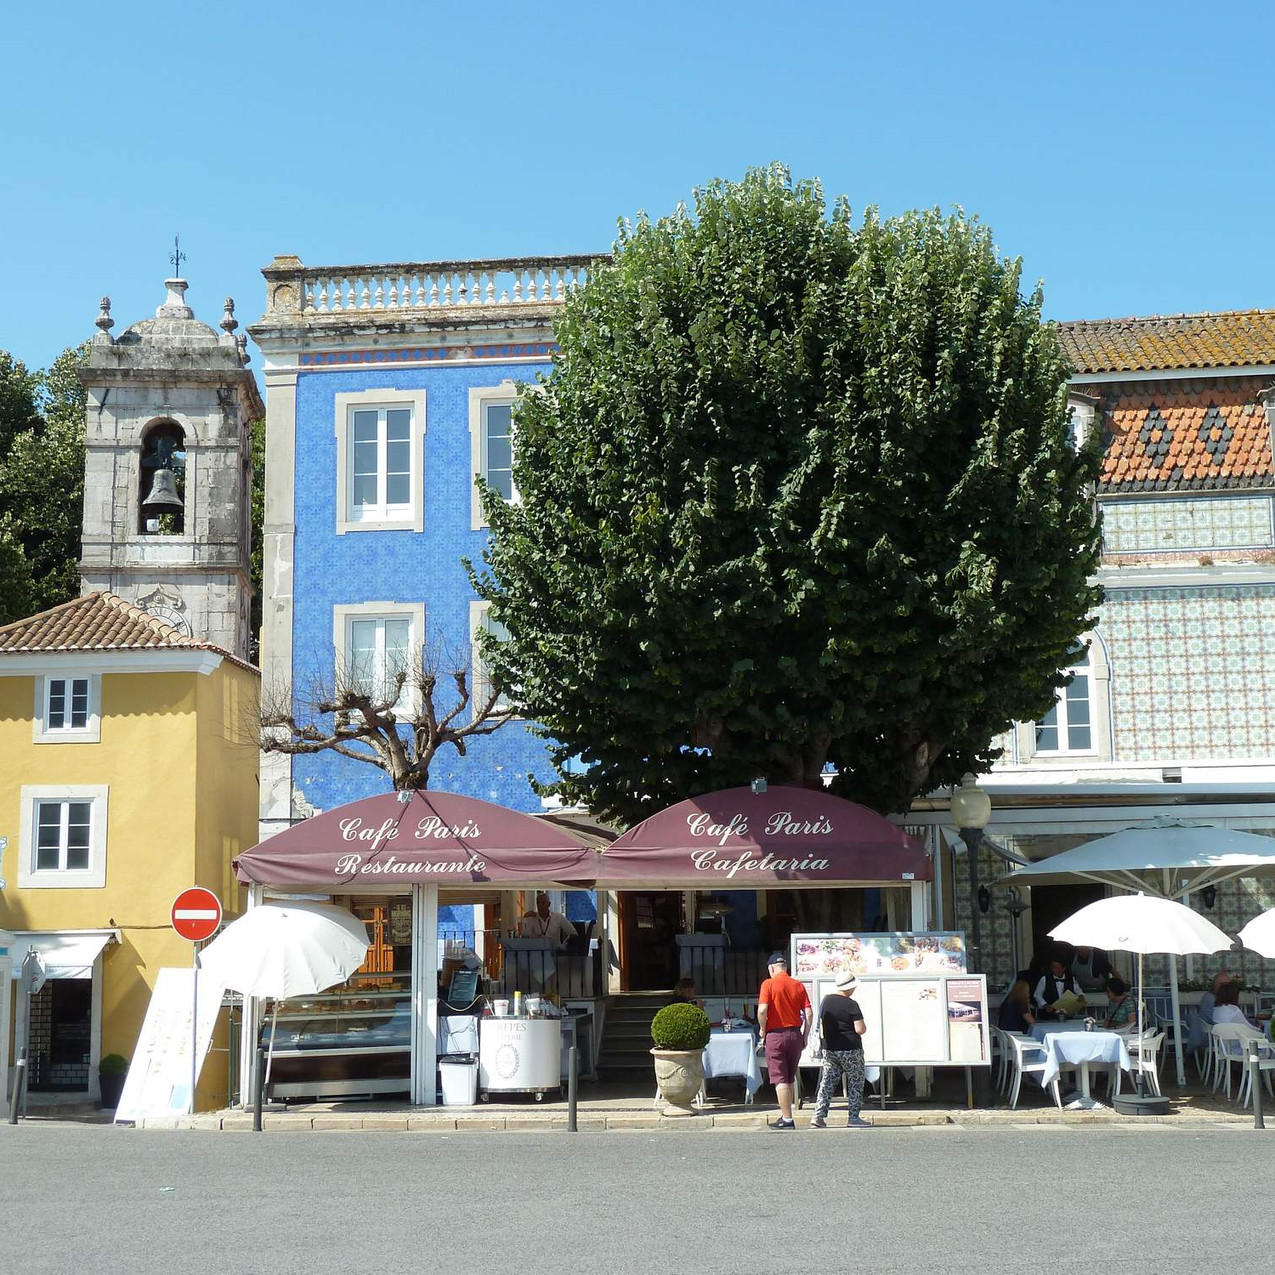 Sintra historical town centre